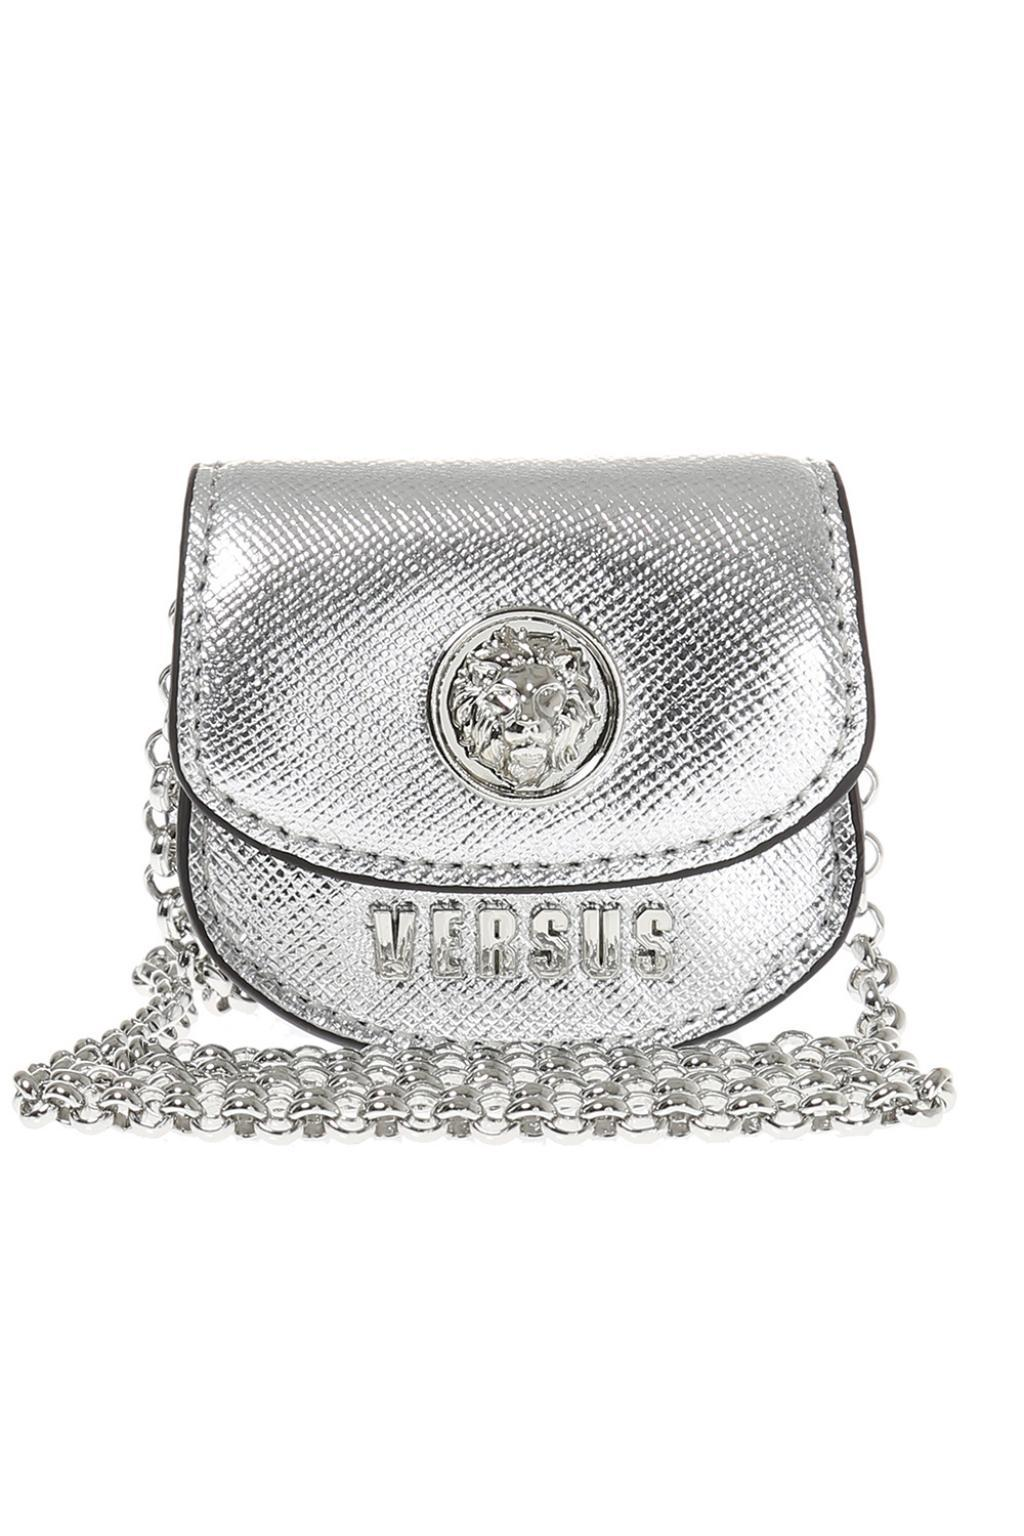 b9a94056090 Versace Bag Charm Necklace in Metallic - Lyst